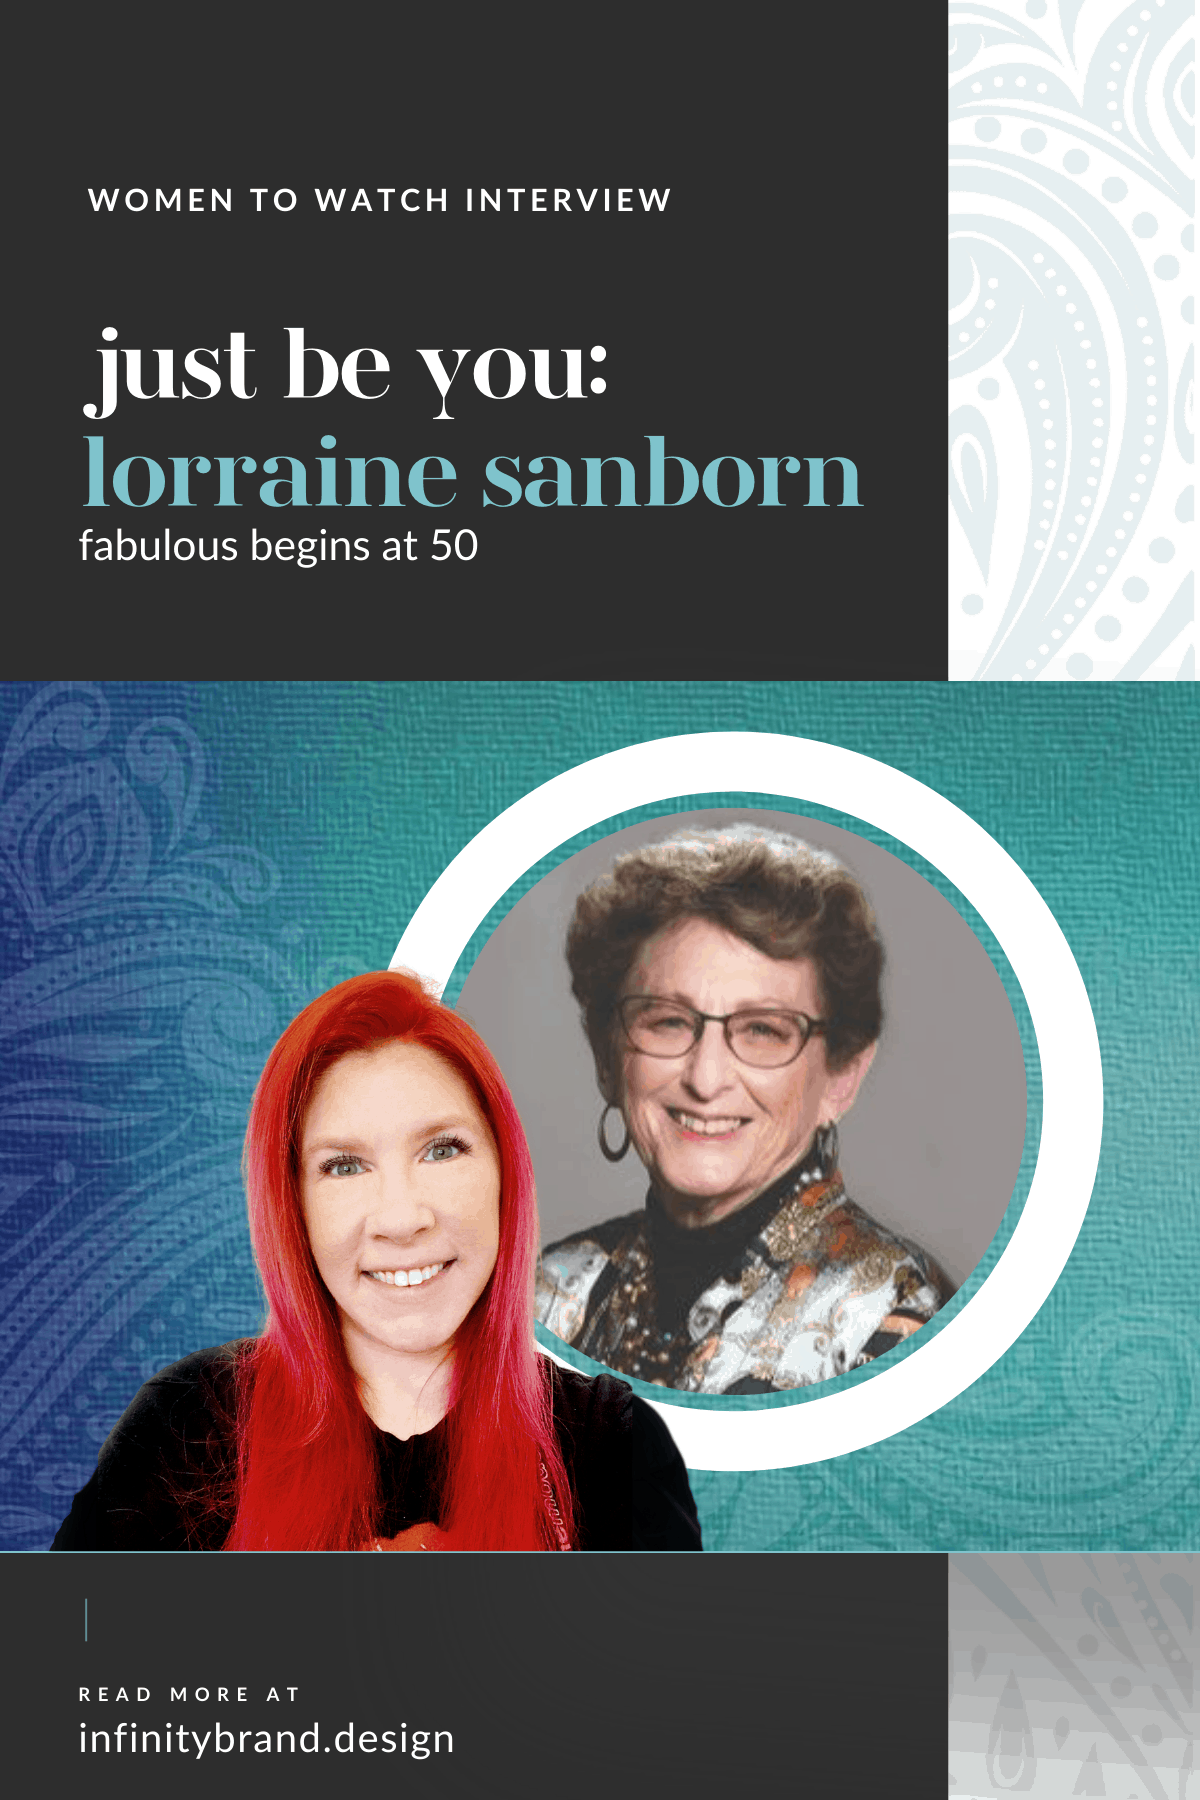 What does authenticity mean to you? On this Infinity Brand Design Women to Watch Interview with Lorraine Sanborn of Fabulous Begins at 50, we discuss Lorraine's entrepreneurial journey that began 7 years ago at the age of 72. She shares the lessons she's learned along the way and we discuss the value of health, building relationships, creating connections, and showing up in ways that are authentic and relatable to customers.